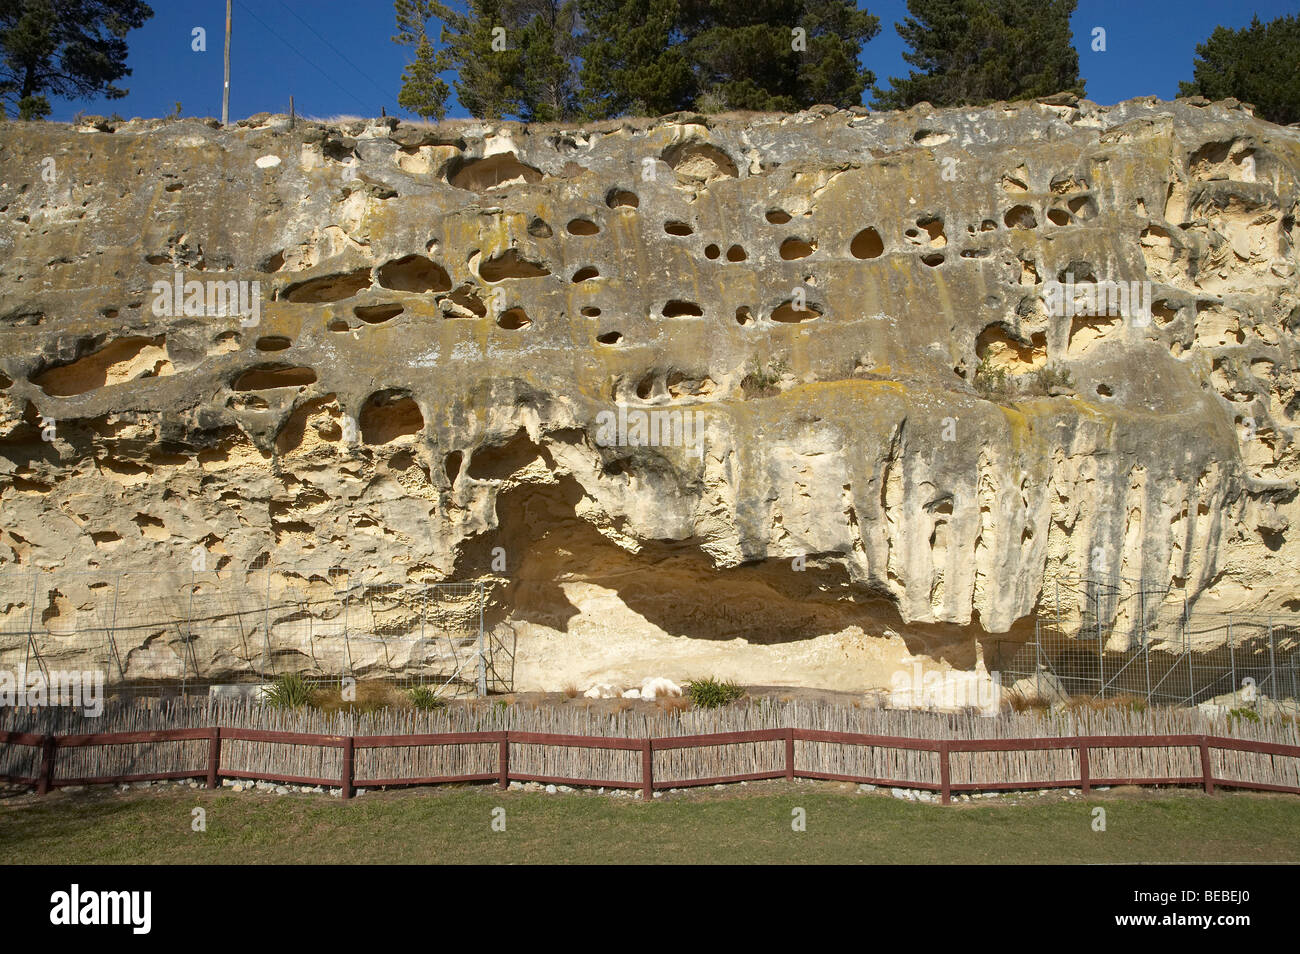 Takiroa Rock Art Site, by State Highway 83 near Duntroon, Waitaki Valley, North Otago, South Island, New Zealand - Stock Image